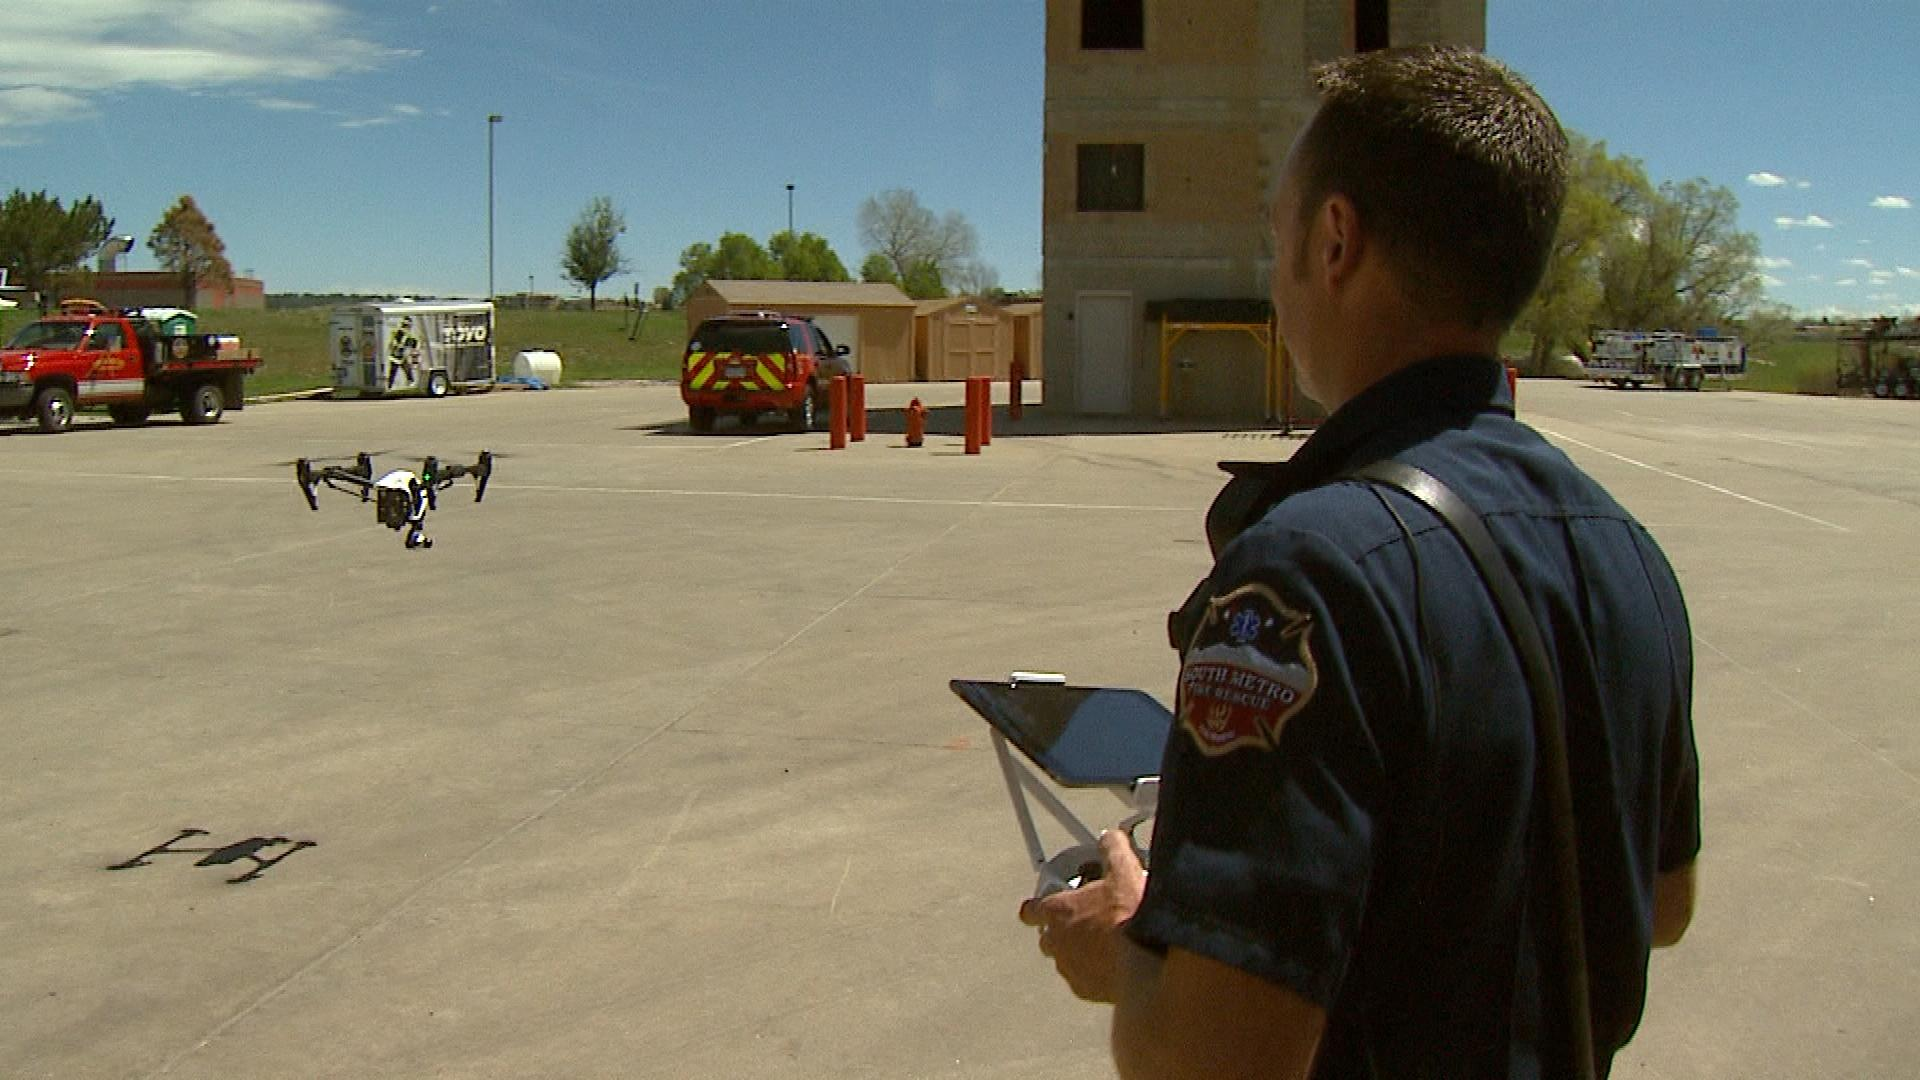 Cpt. Andy Powell with South Metro Fire Rescue Authority flies a drone (credit: CBS)